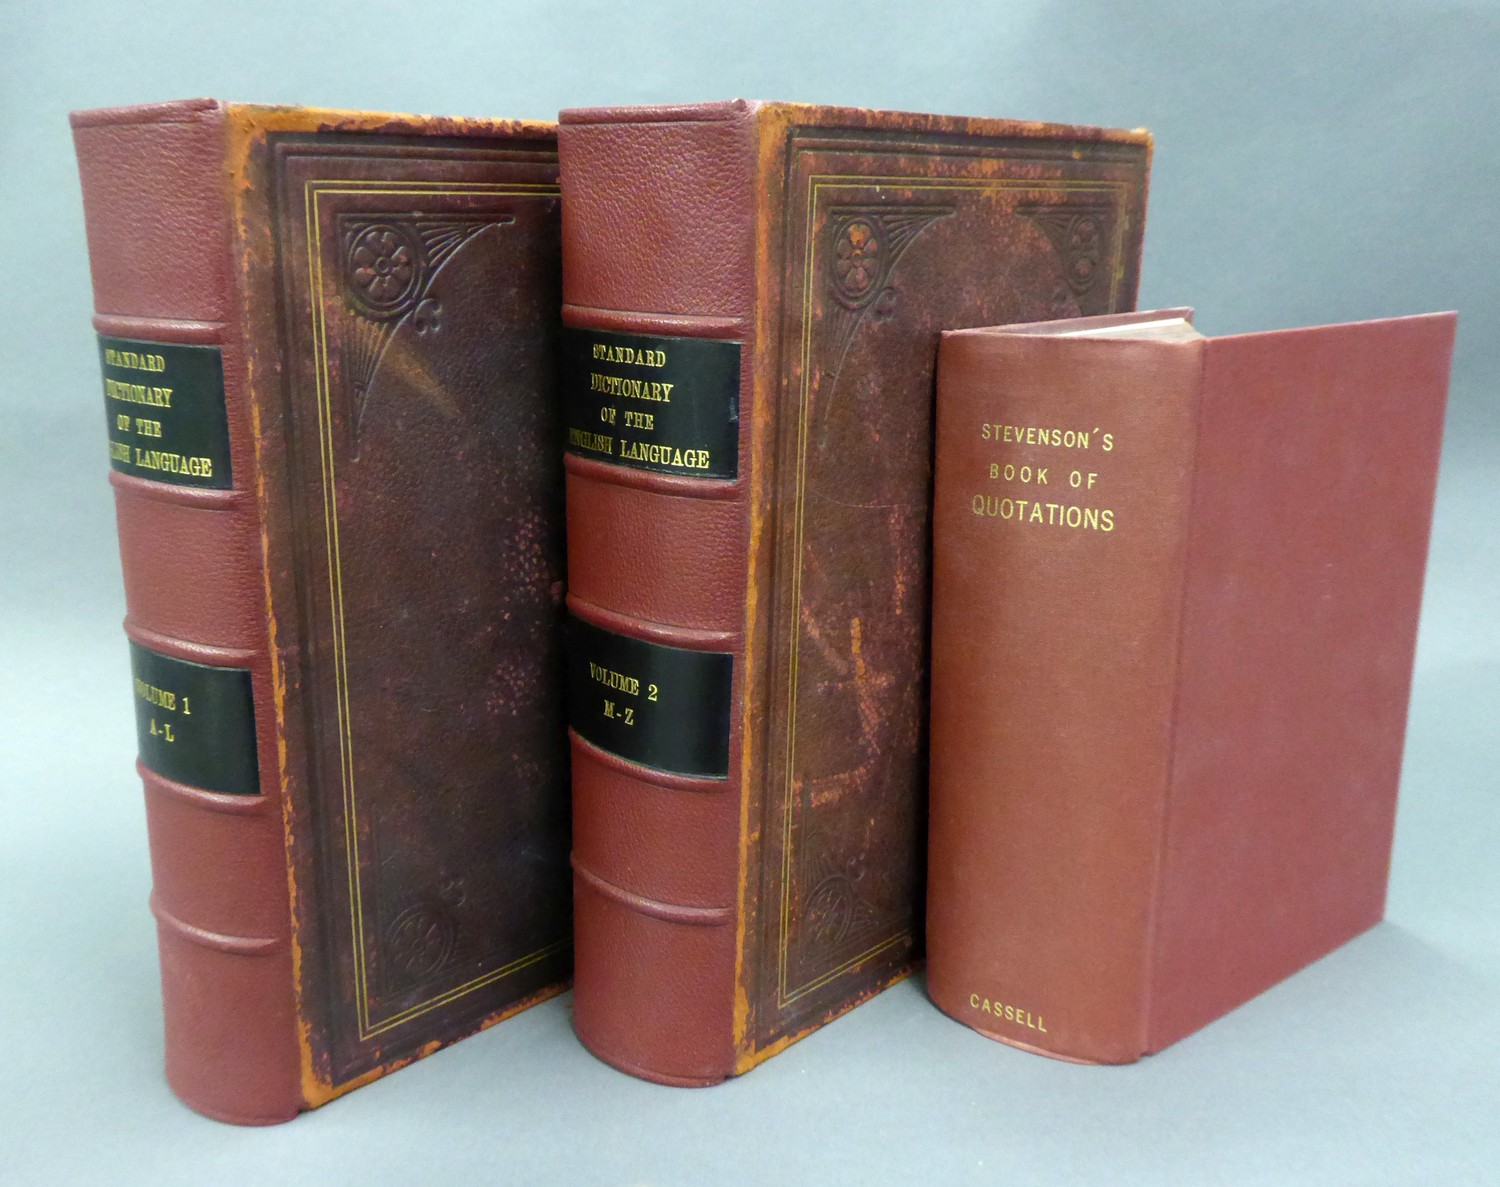 Standard Dictionary of English Language, Funk and Wagnalls Company 1907, 2 vol, re-cased, full